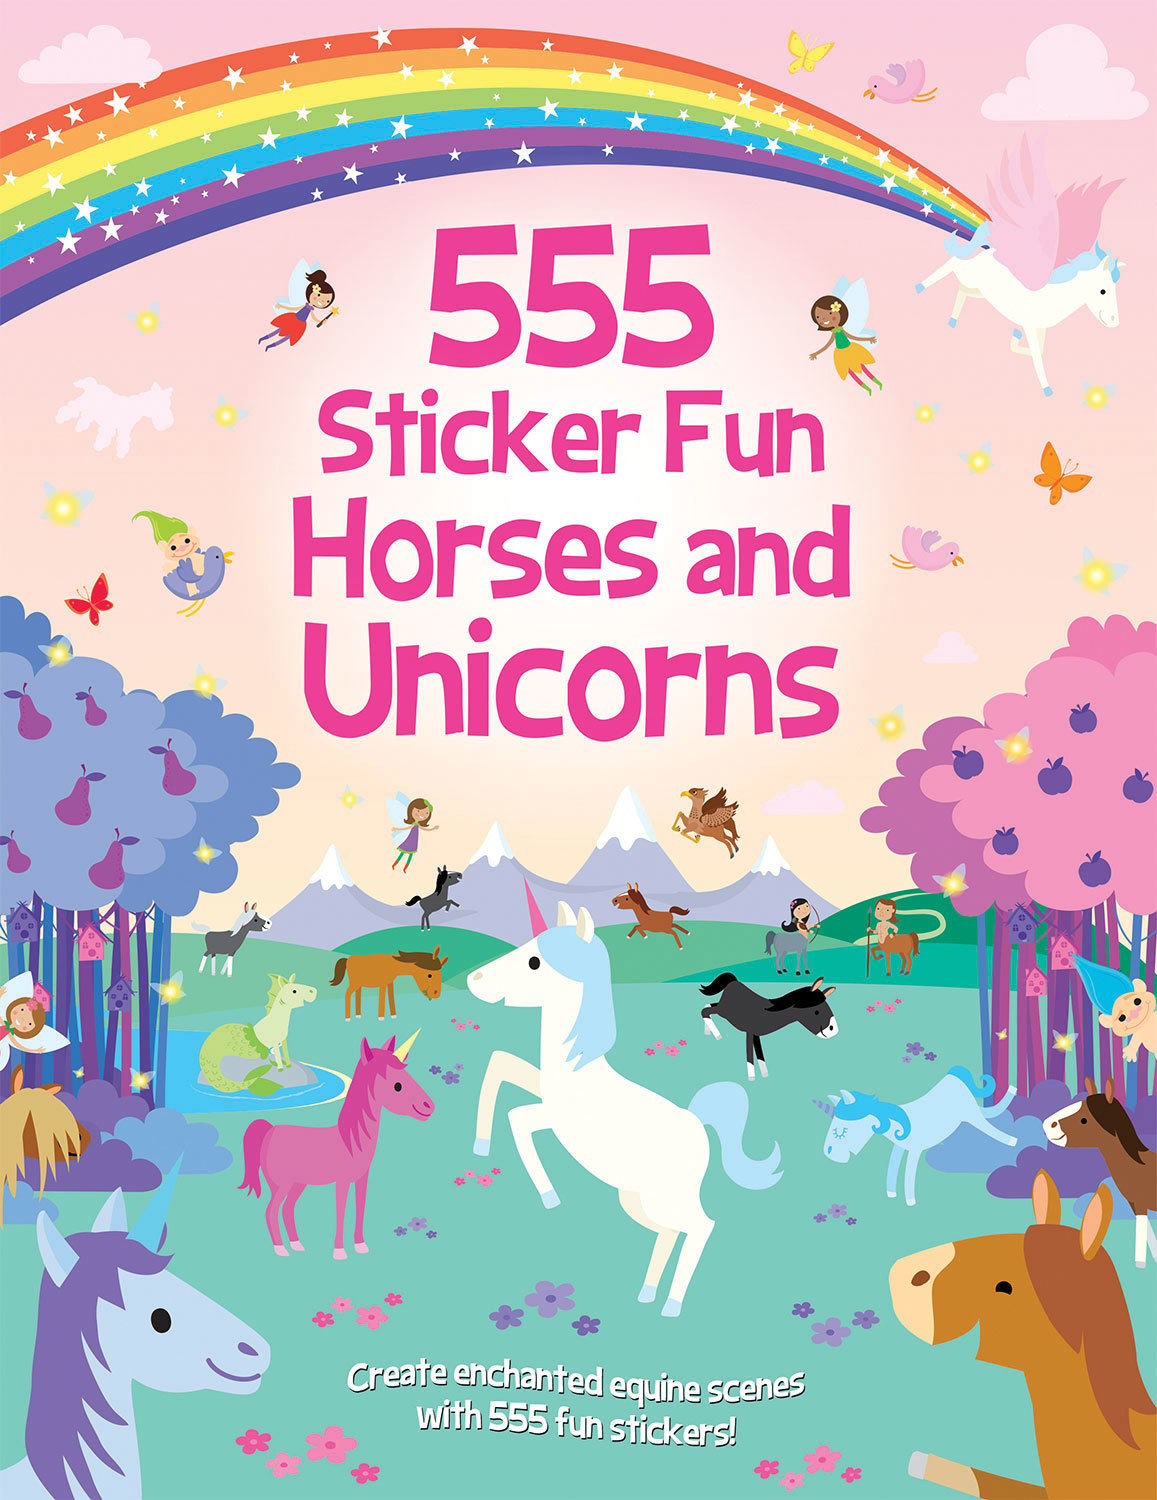 555 Sticker Fun Horses and Unicorns